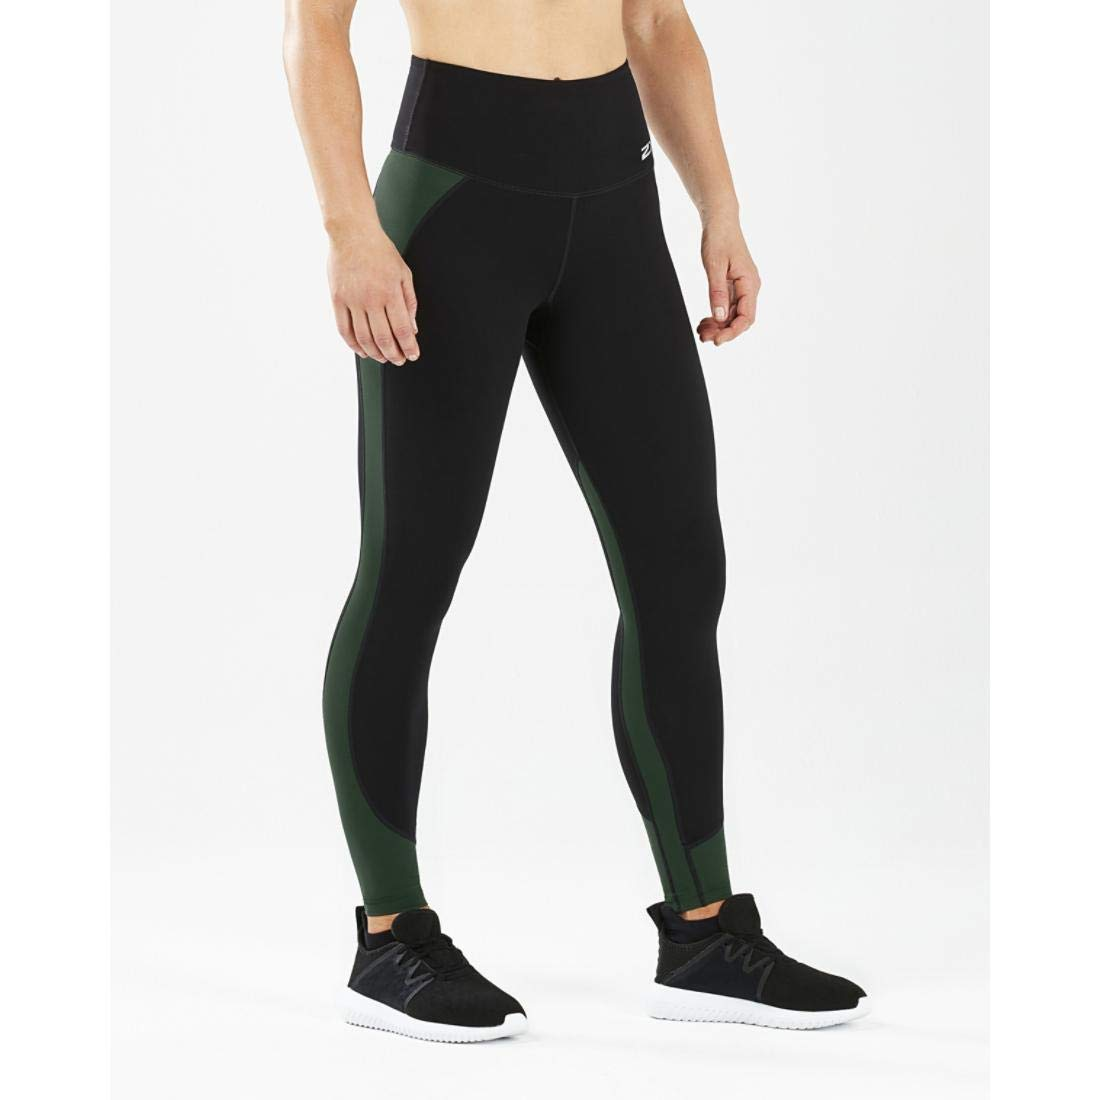 2XU Women's Fitness Hi-Rise Comp Tights, Black/Mountain View, S-T by 2XU